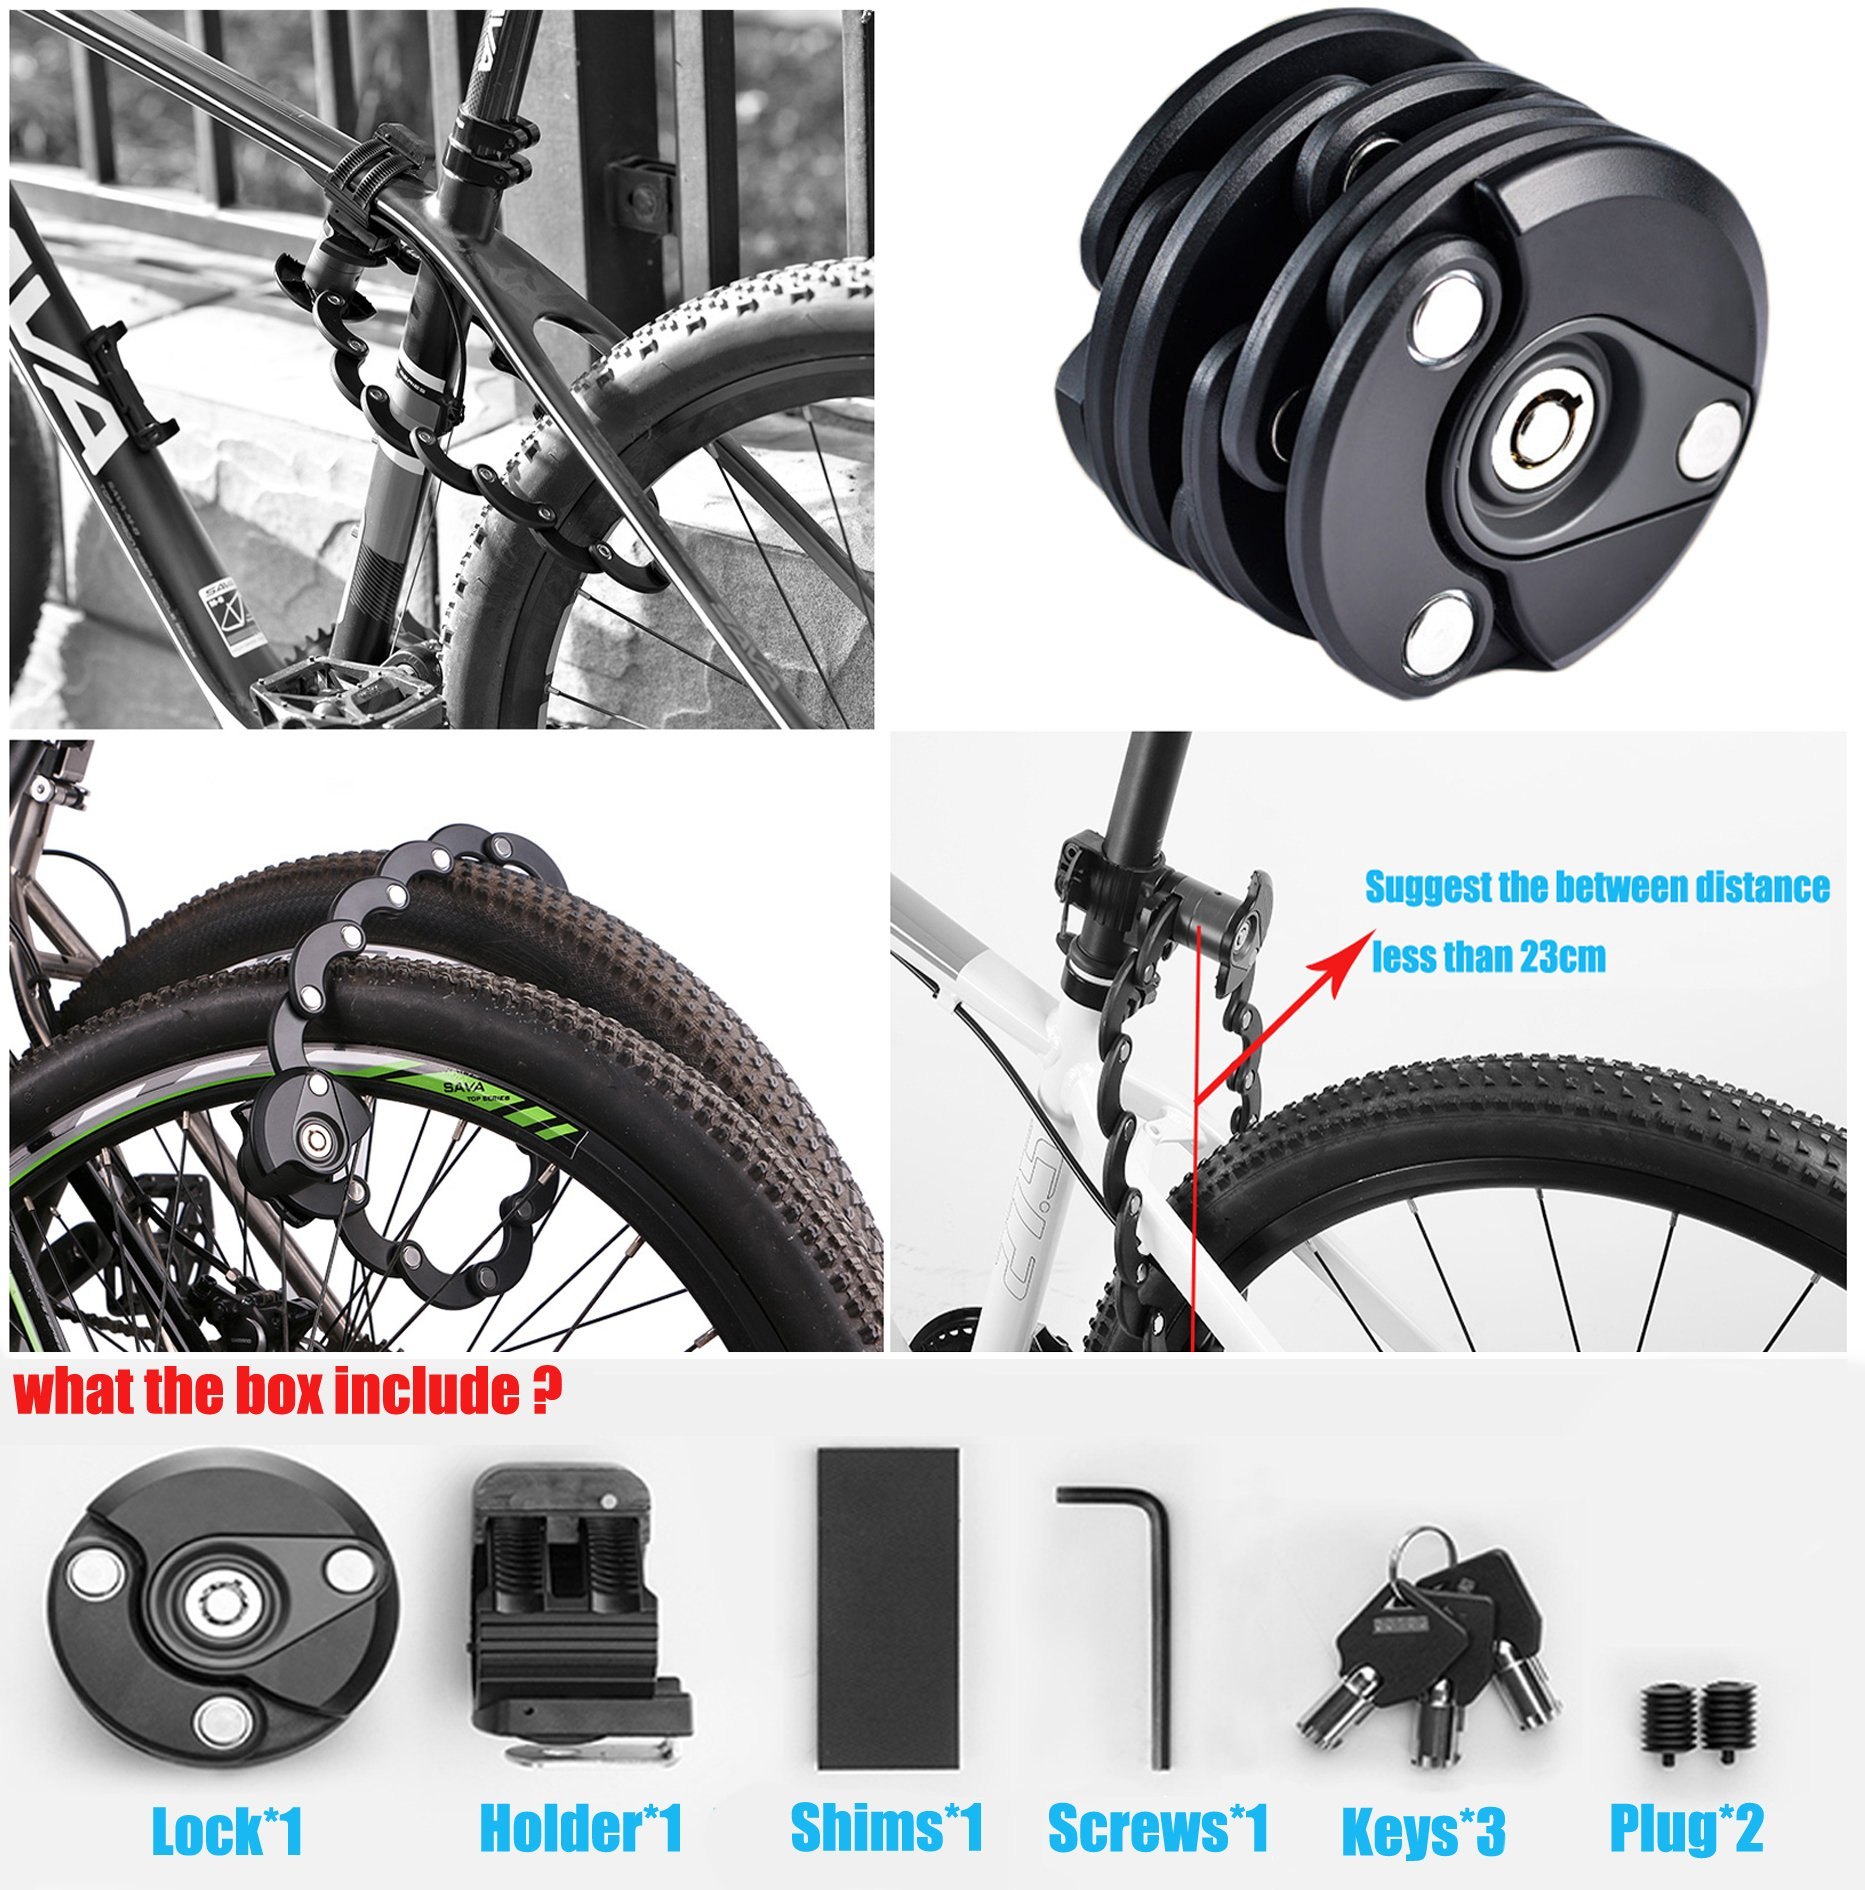 LoaferUp High Security Zinc Alloy Chain Lock for Bicycle/Motor Bike, Folding, Drill Against by by LoaferUp (Image #4)